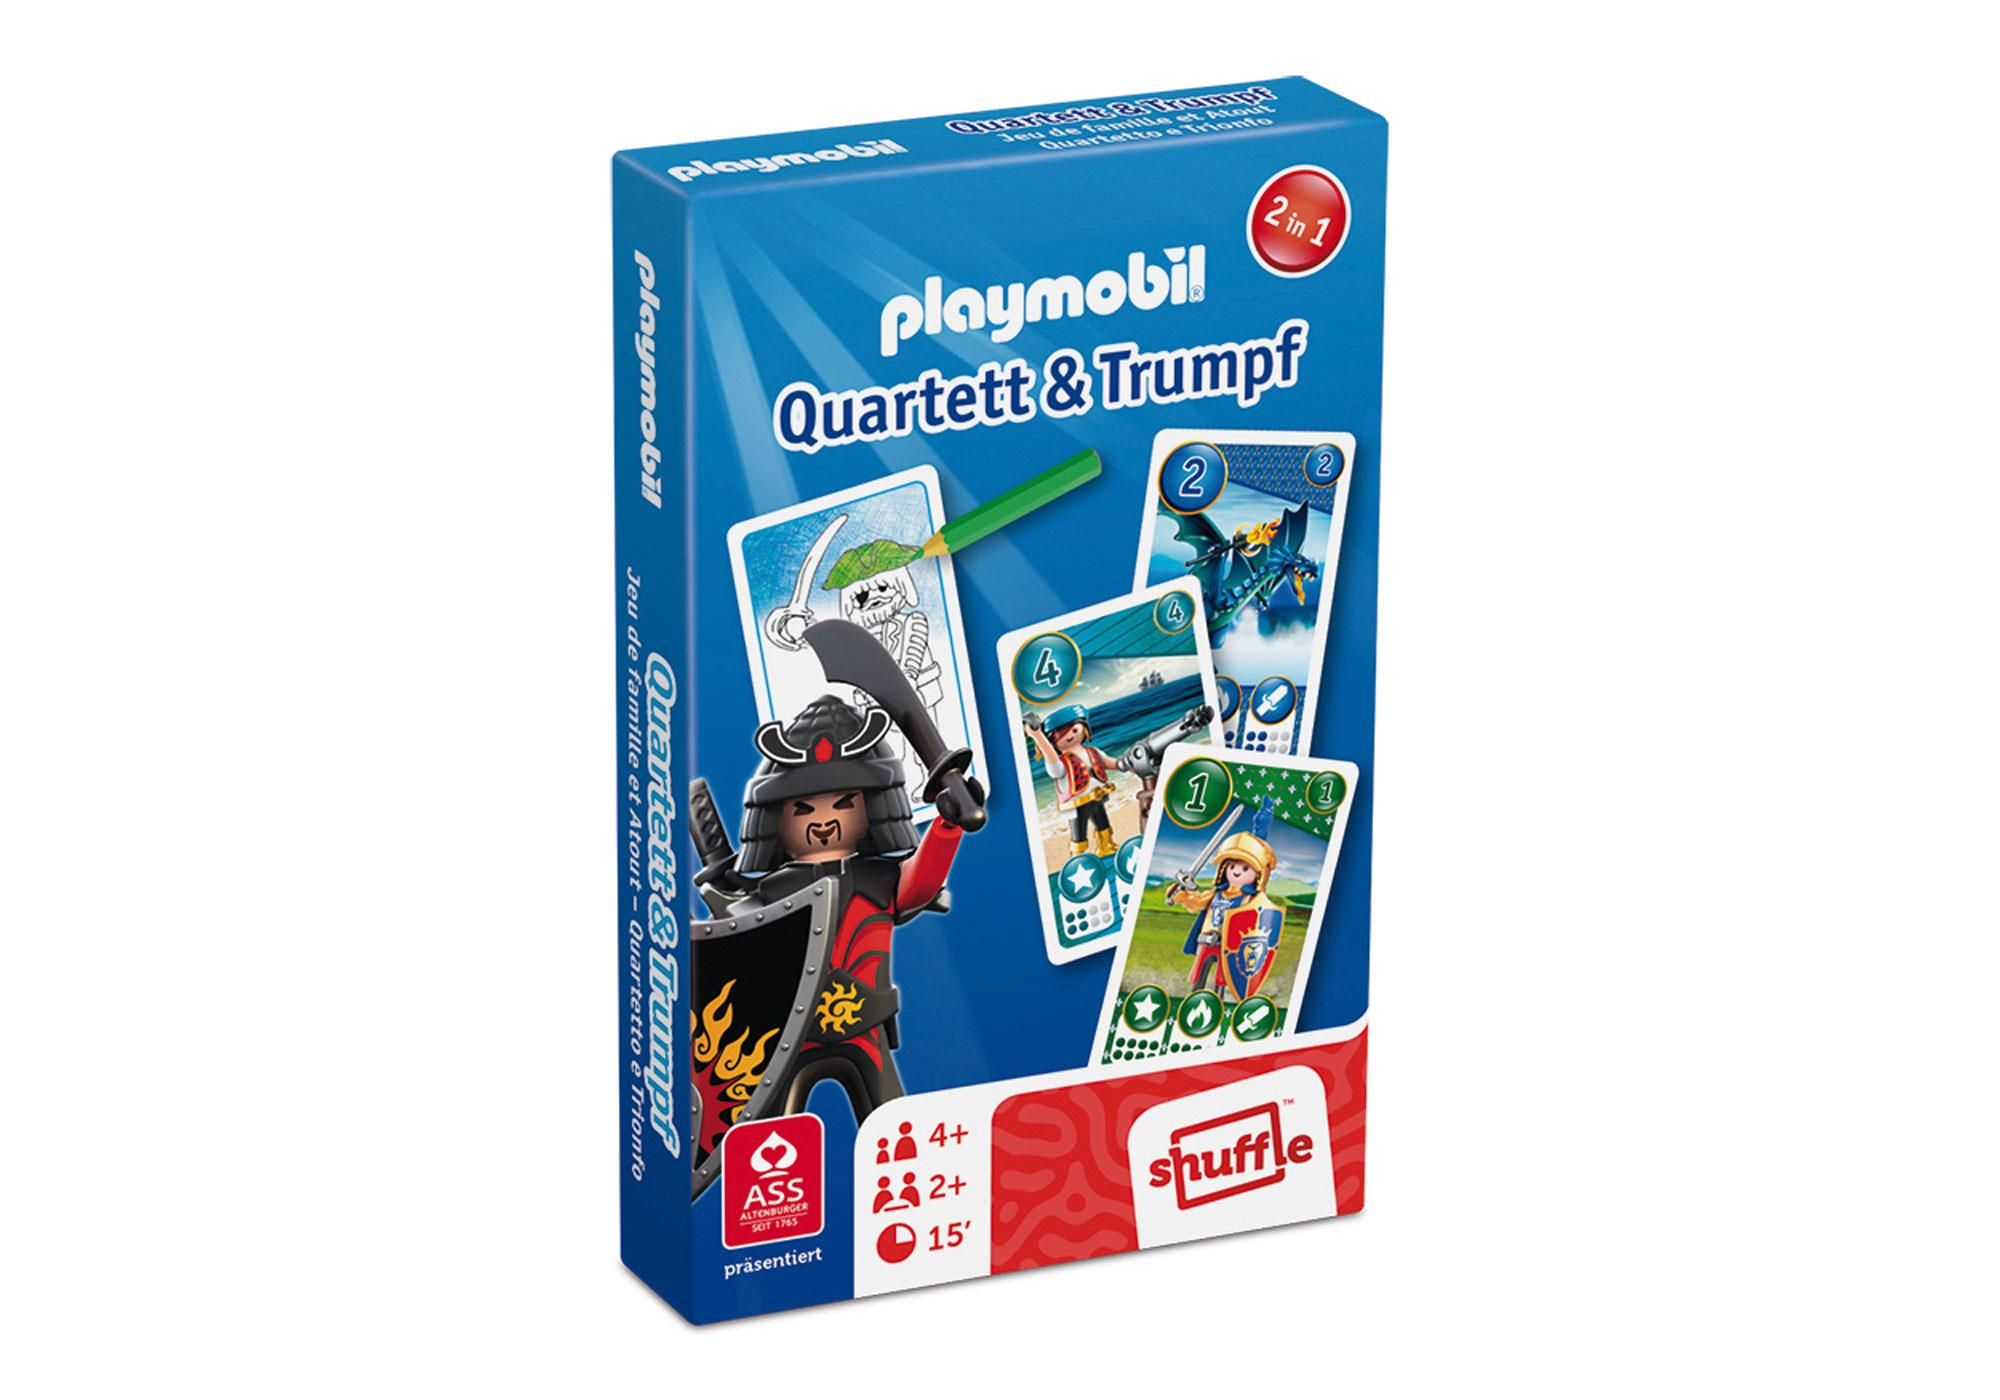 http://media.playmobil.com/i/playmobil/80095_product_detail/Quartett&Trumpf Boys